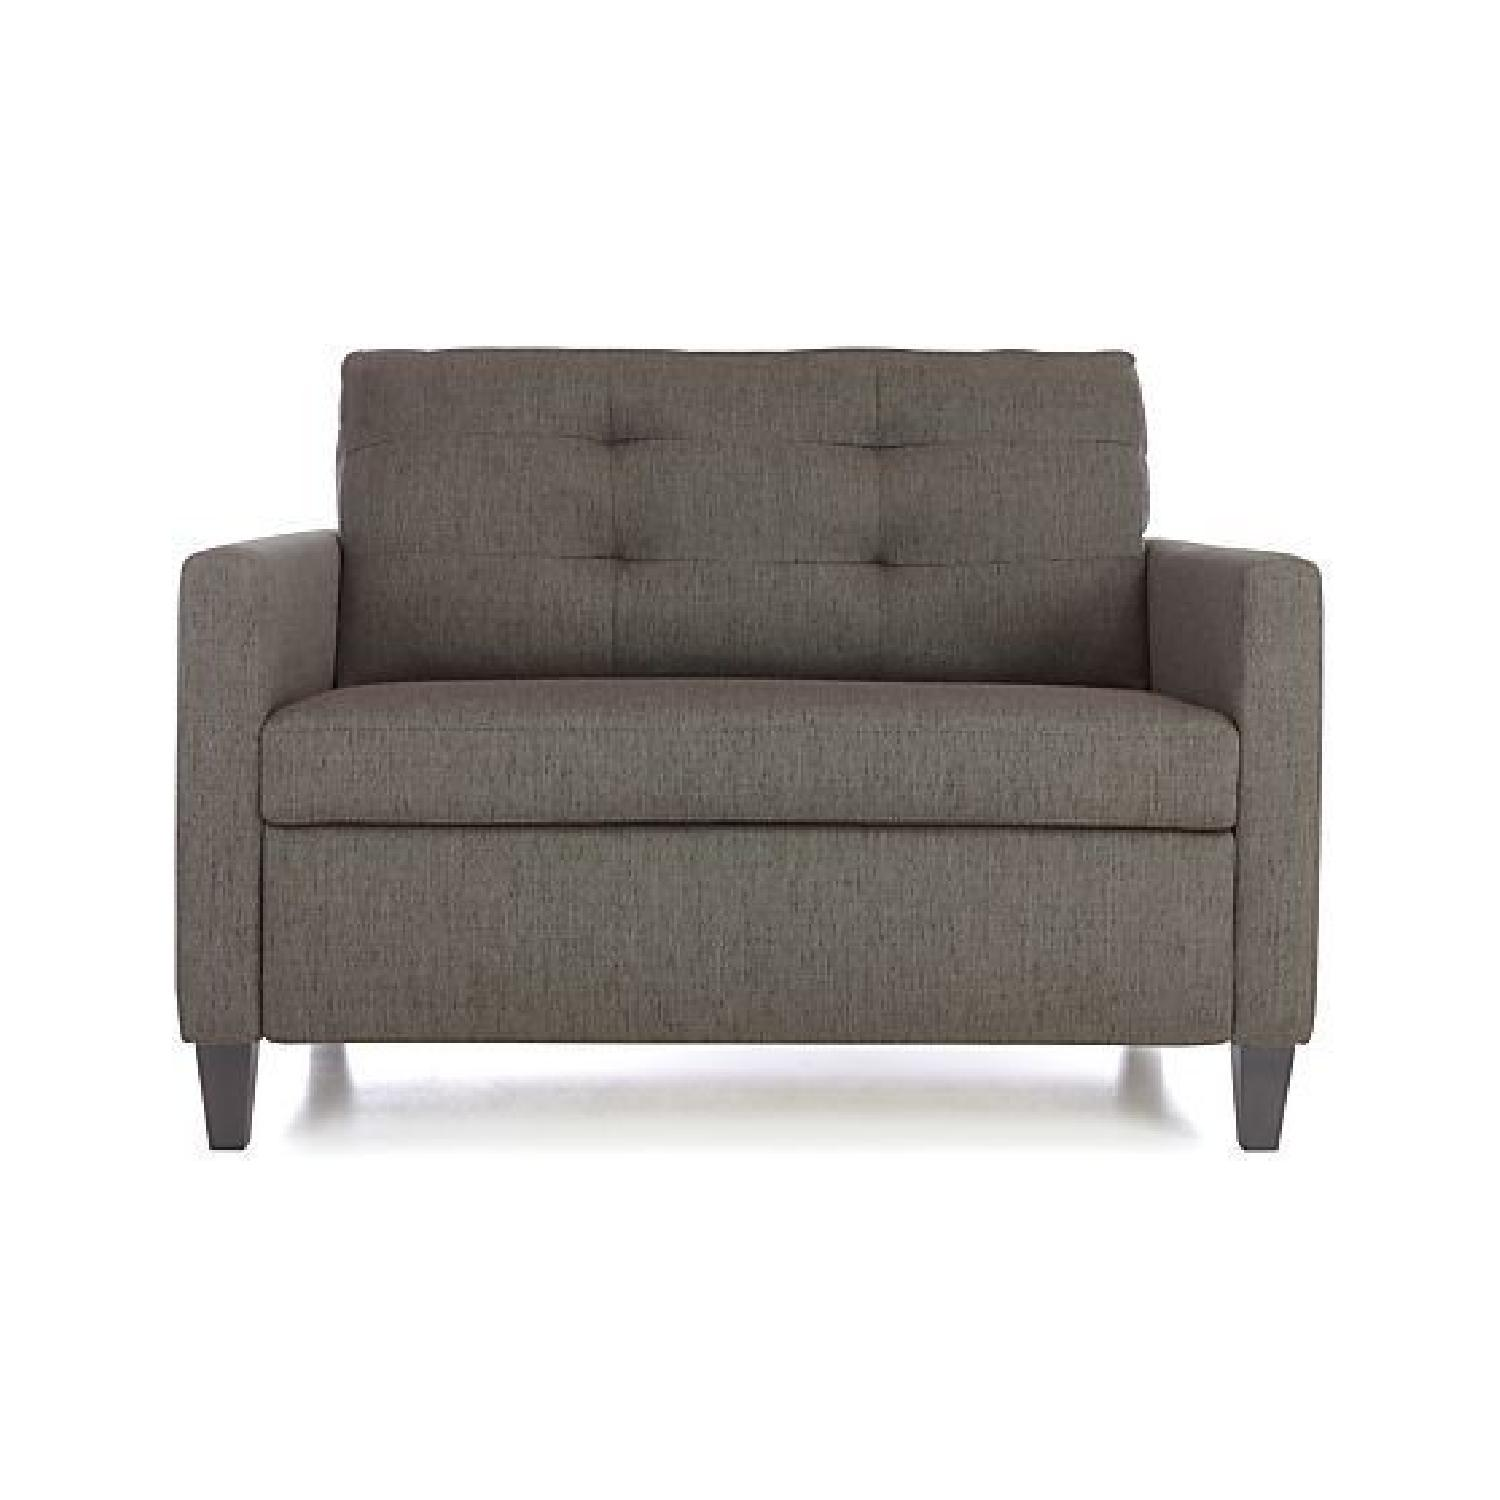 Crate & Barrel Karnes Twin Sleeper Sofa - image-0